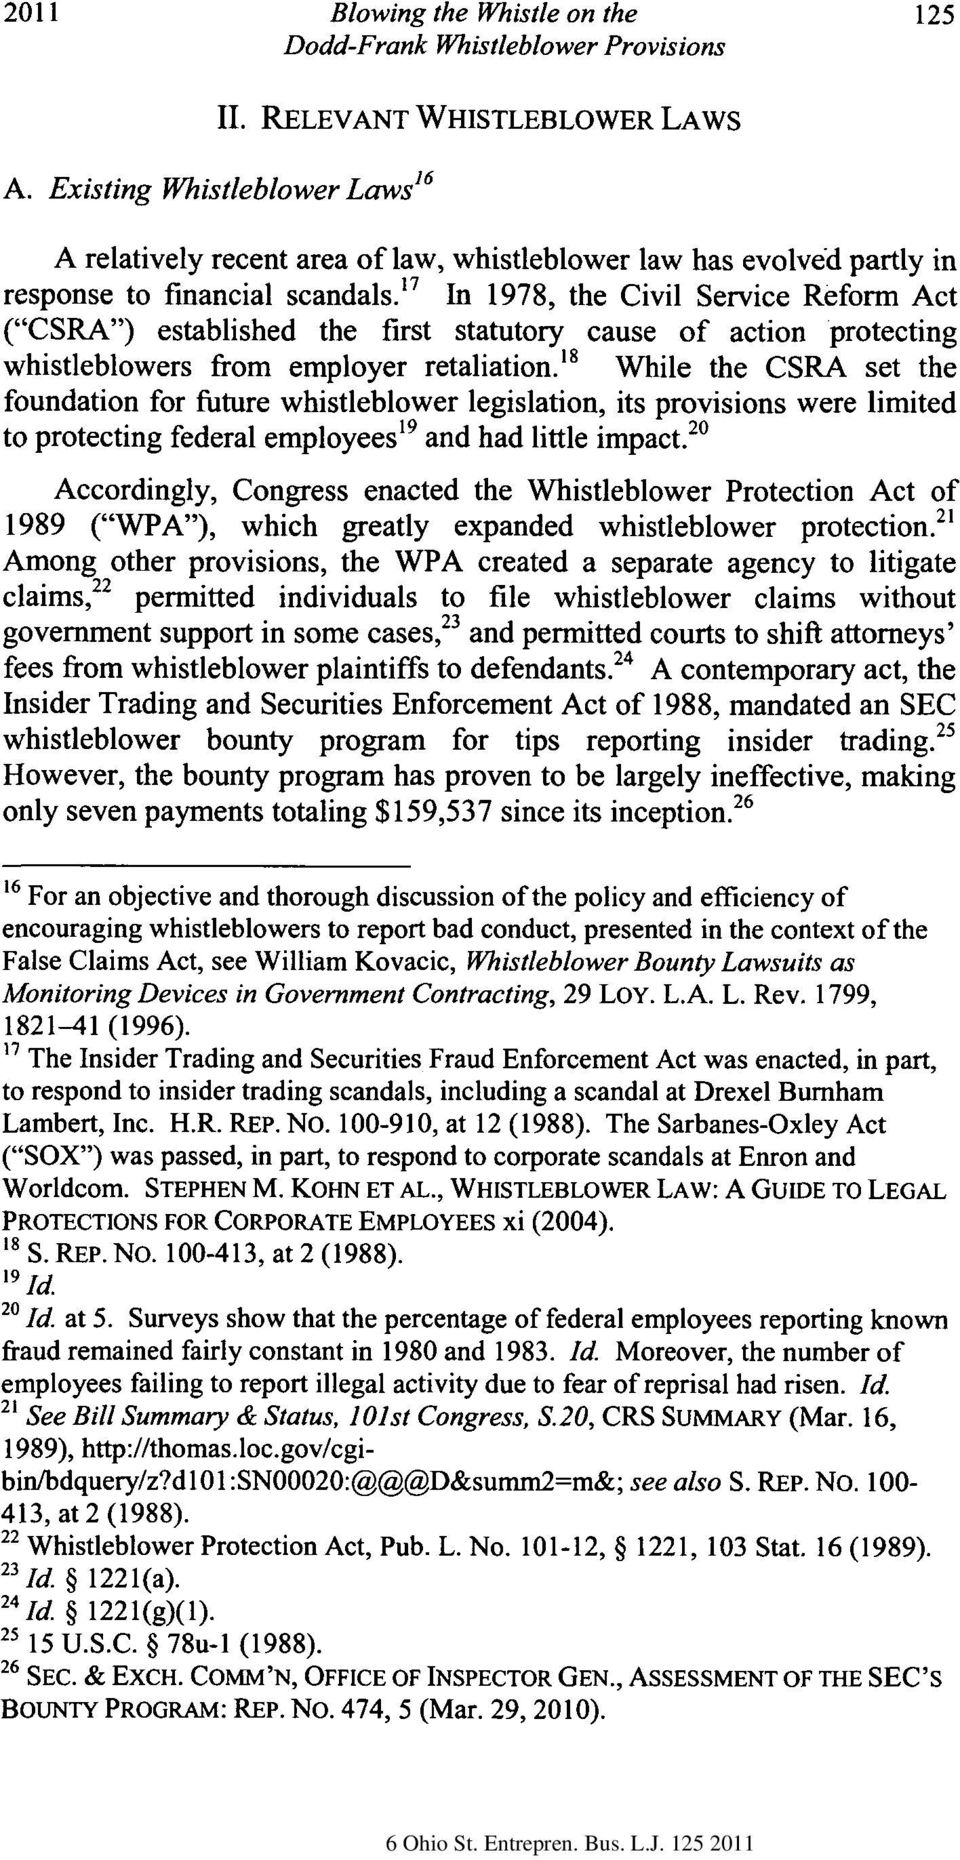 "' 7 In 1978, the Civil Service Reform Act (""CSRA"") established the first statutory cause of action protecting whistleblowers from employer retaliation."